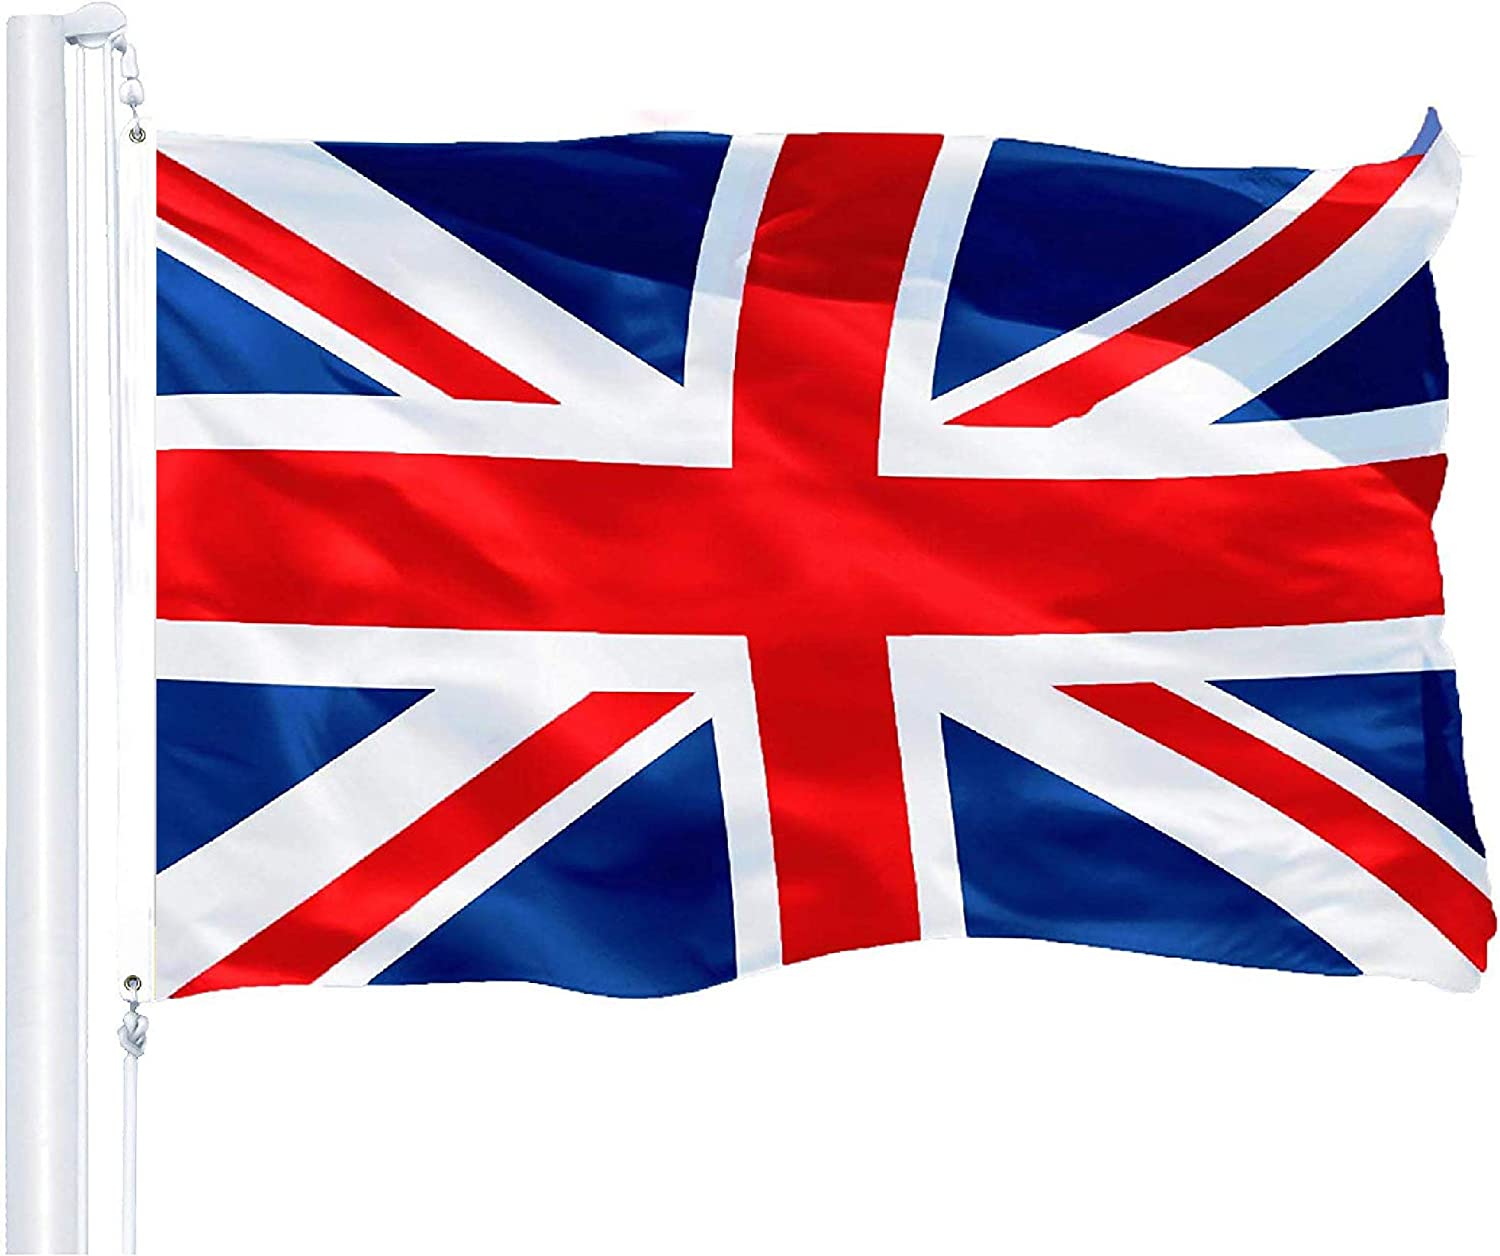 G128 – United Kingdom Flag (British, Union Jack) | 3x5 feet | Printed 150D – Indoor/Outdoor, Vibrant Colors, Brass Grommets, Quality Polyester, Much Thicker More Durable Than 100D 75D Polyester